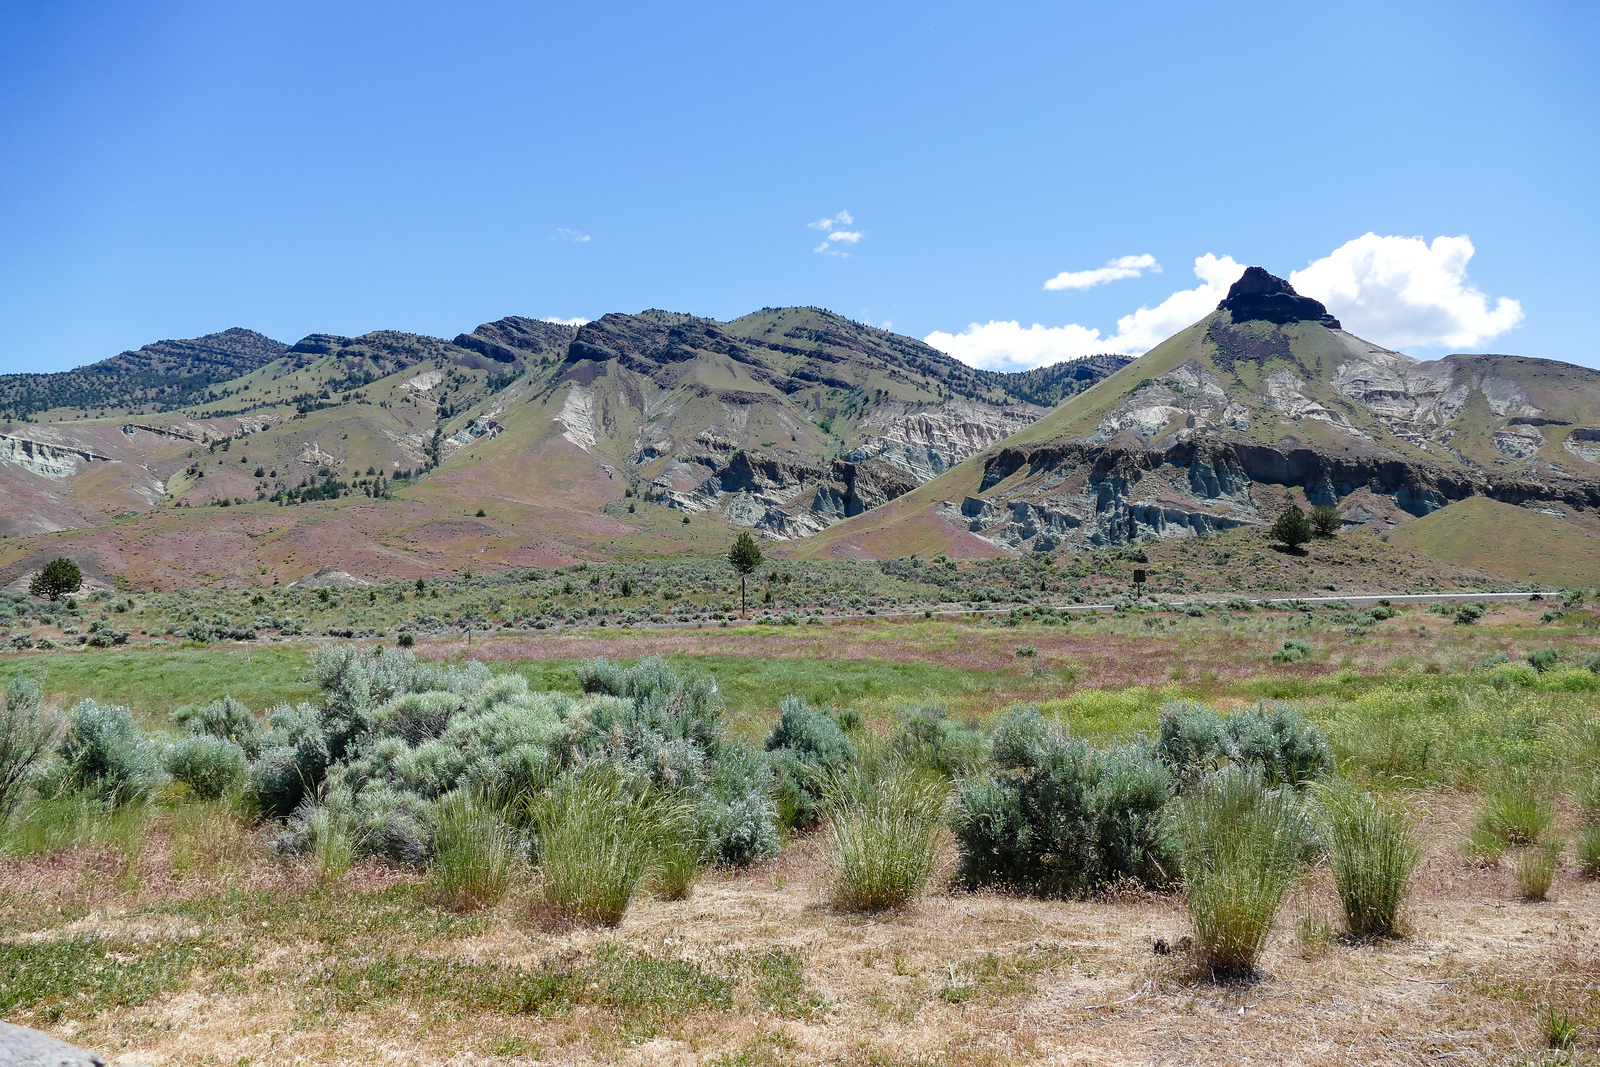 Boomer travel - U.S. National Parks - Visit the Sheep Unit in John Day Fossil Beds National Monument for a boomer travel adventure in eastern Oregon.